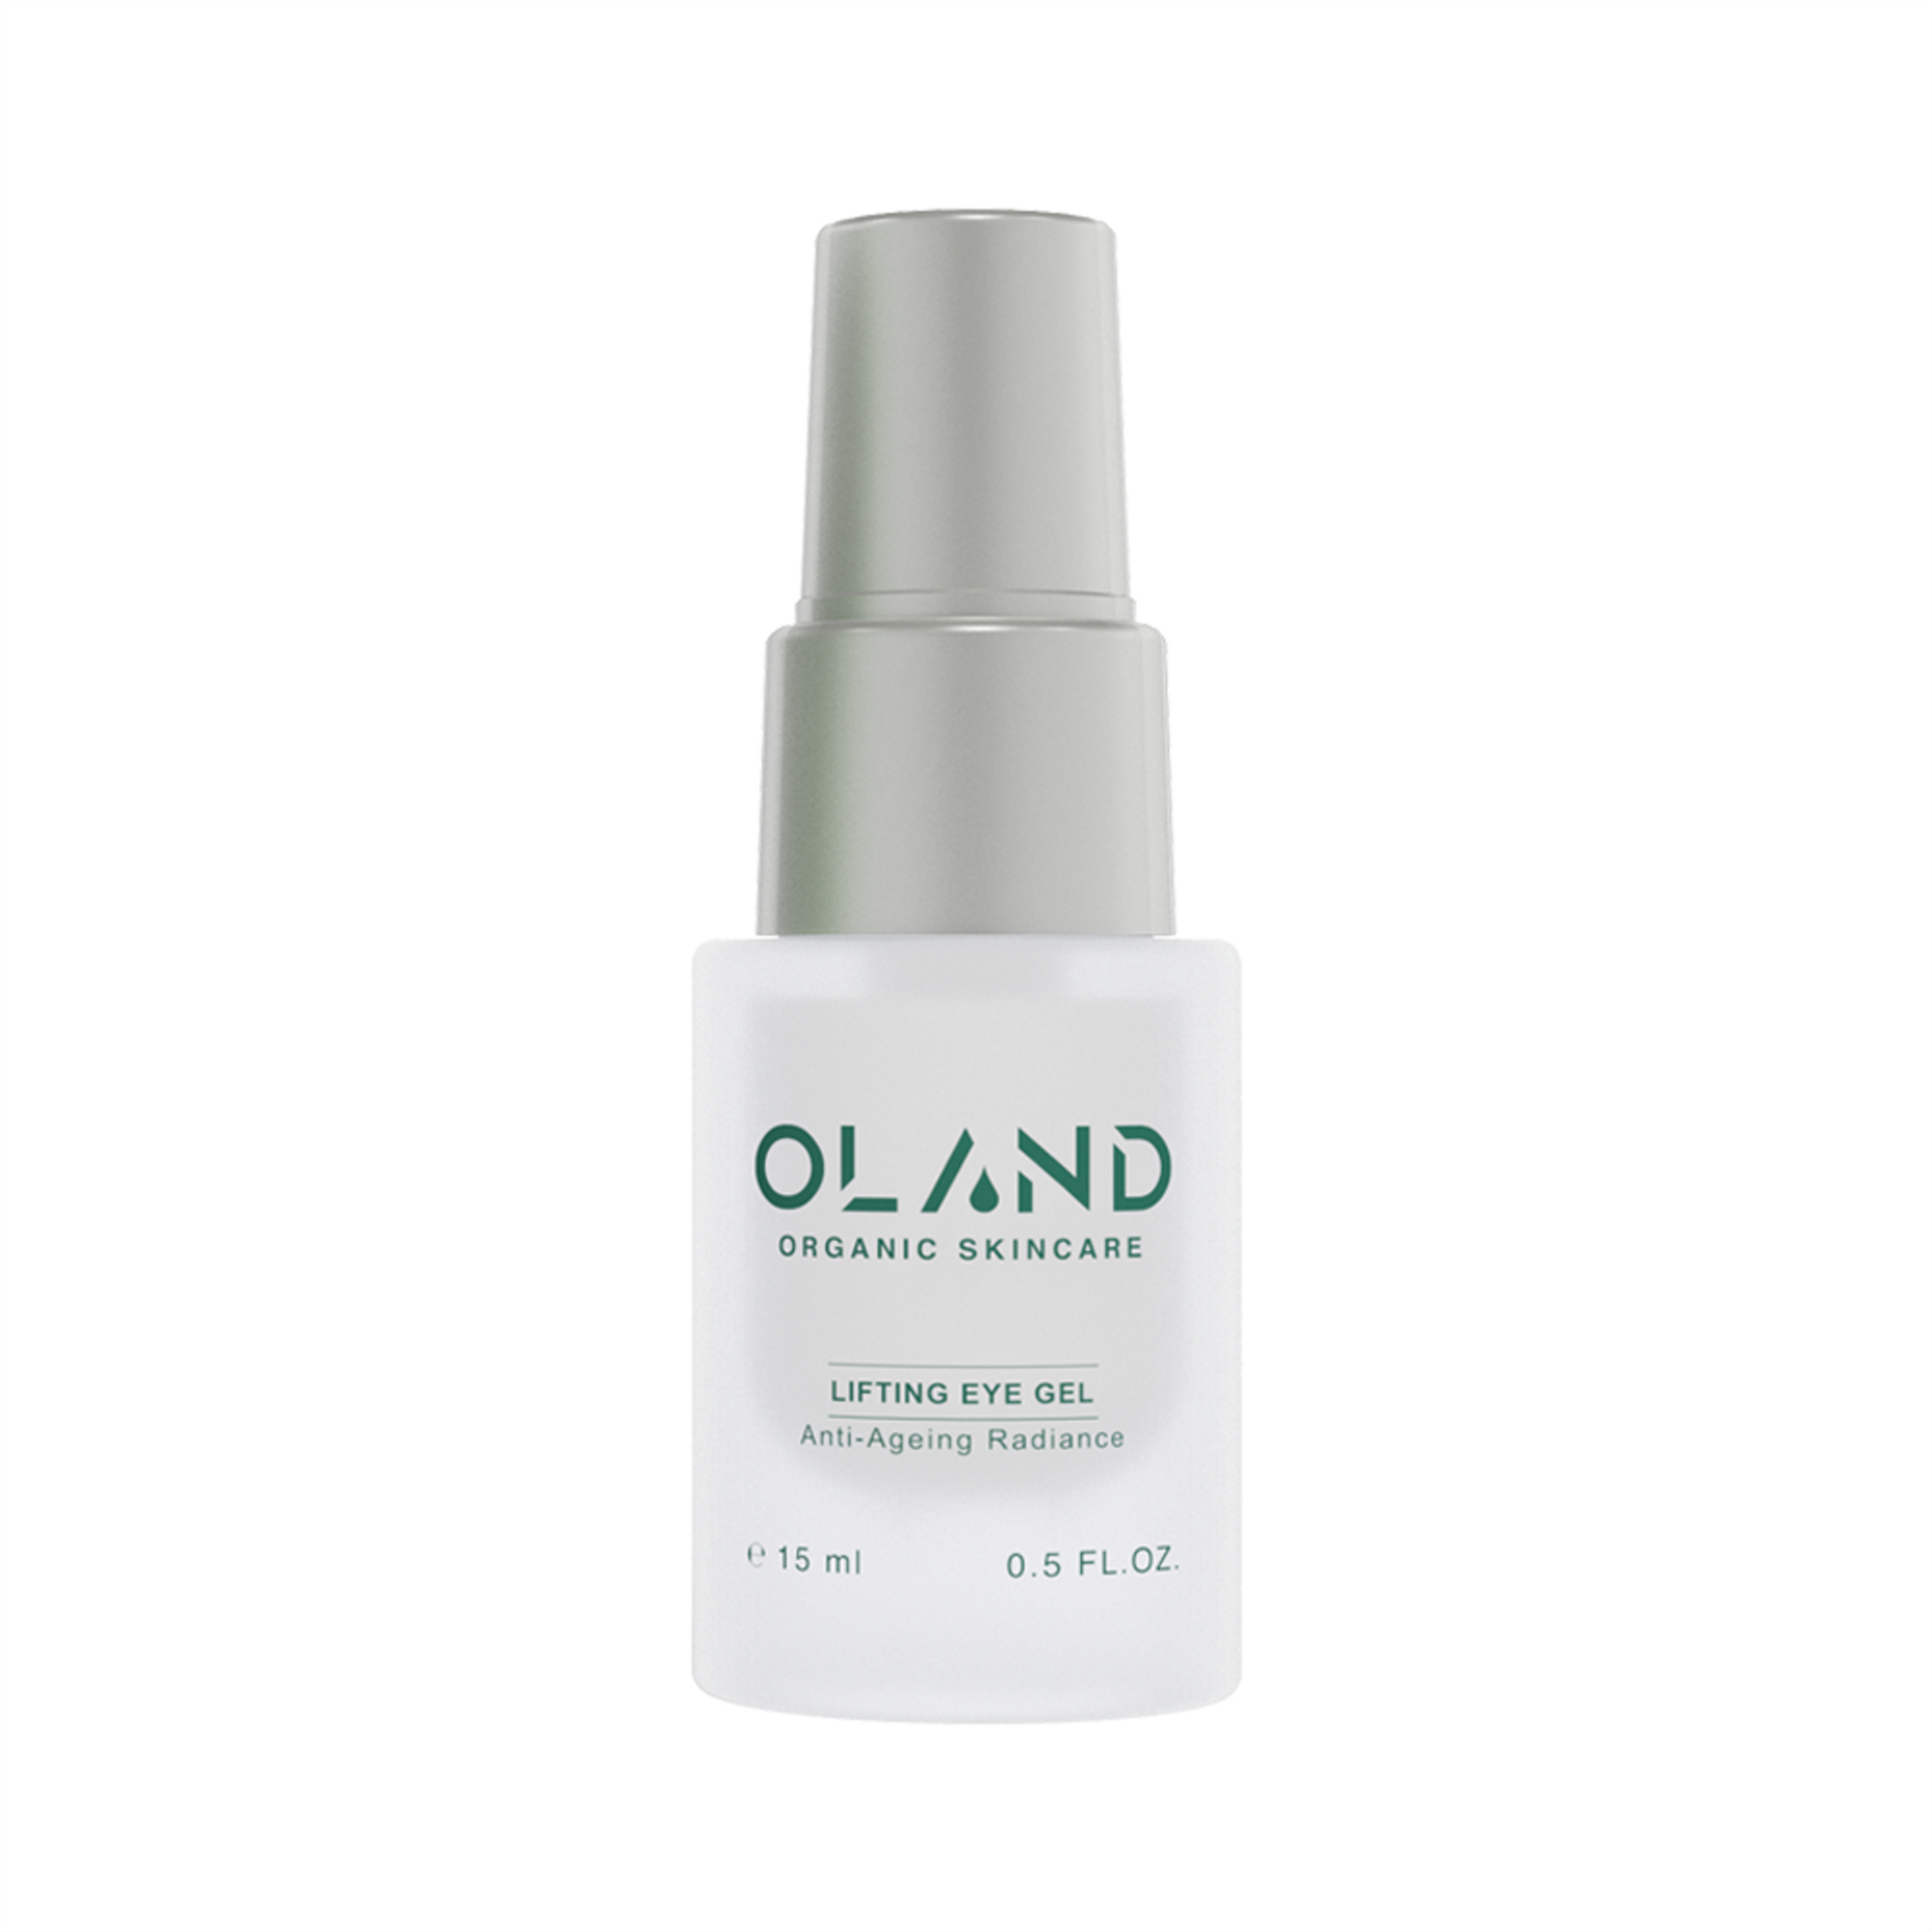 Lifting eye gel de Oland